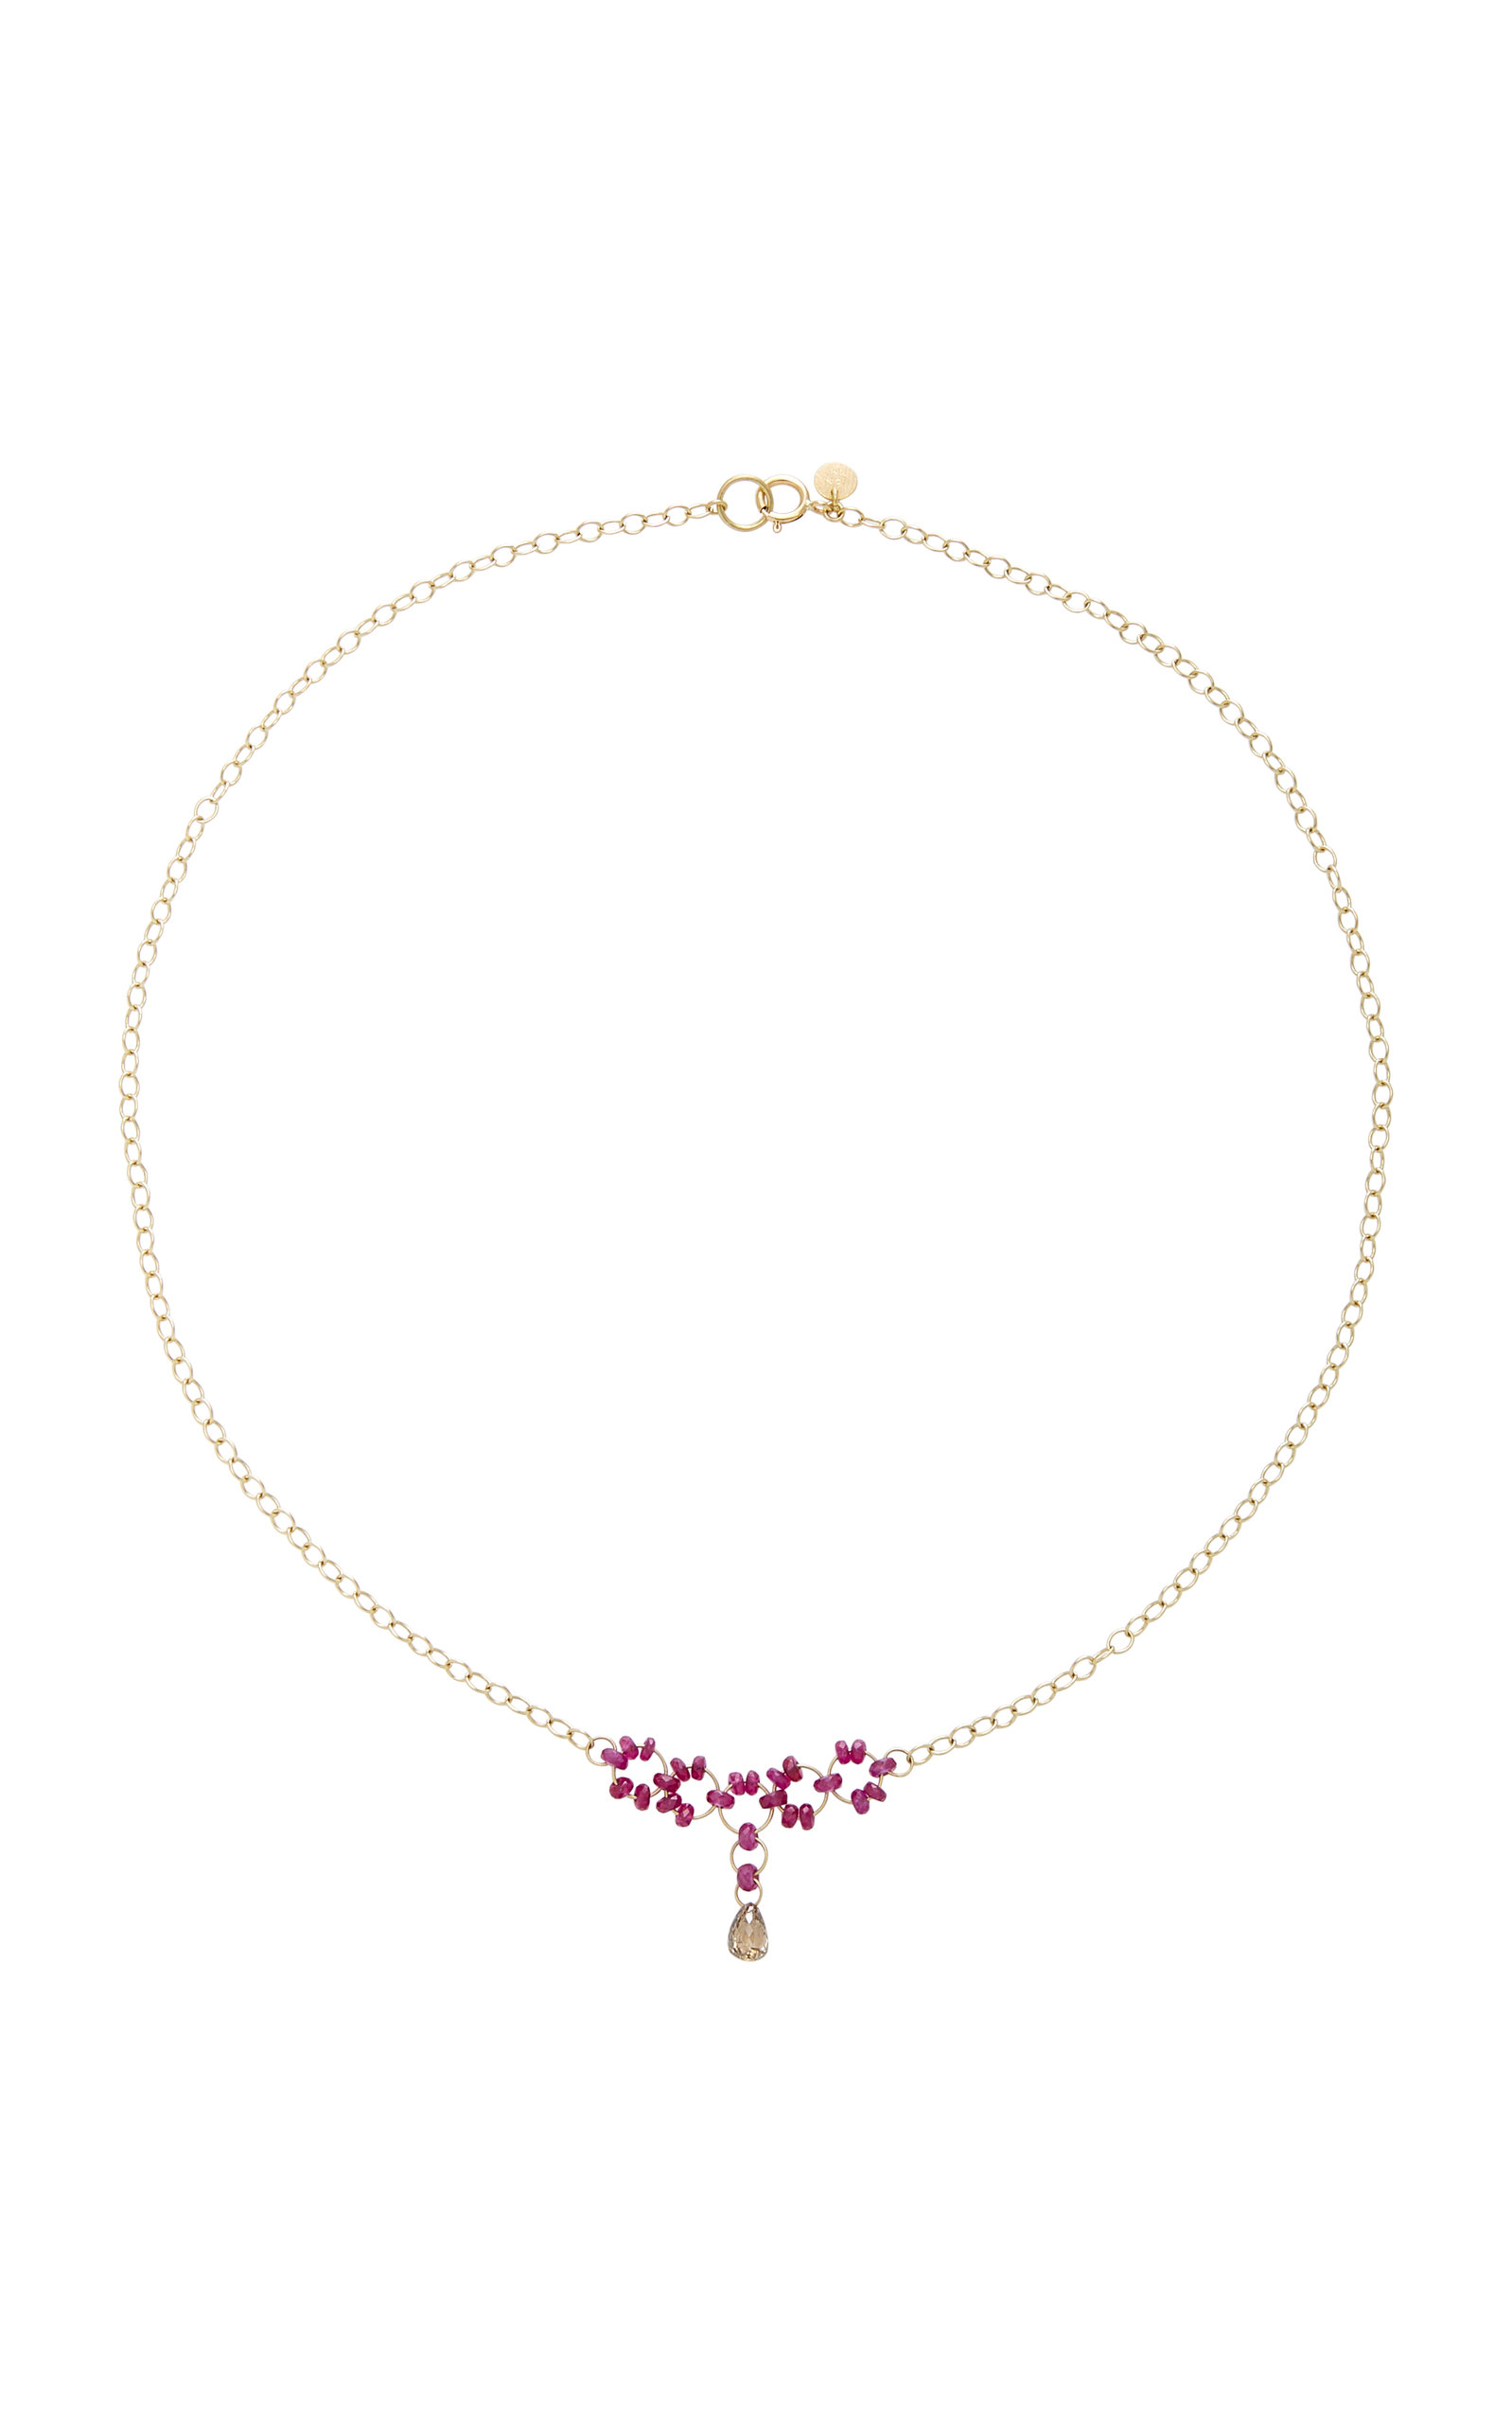 MALLARY MARKS Petite Trestle 18K Gold Ruby And Diamond Briollete Necklace in Pink